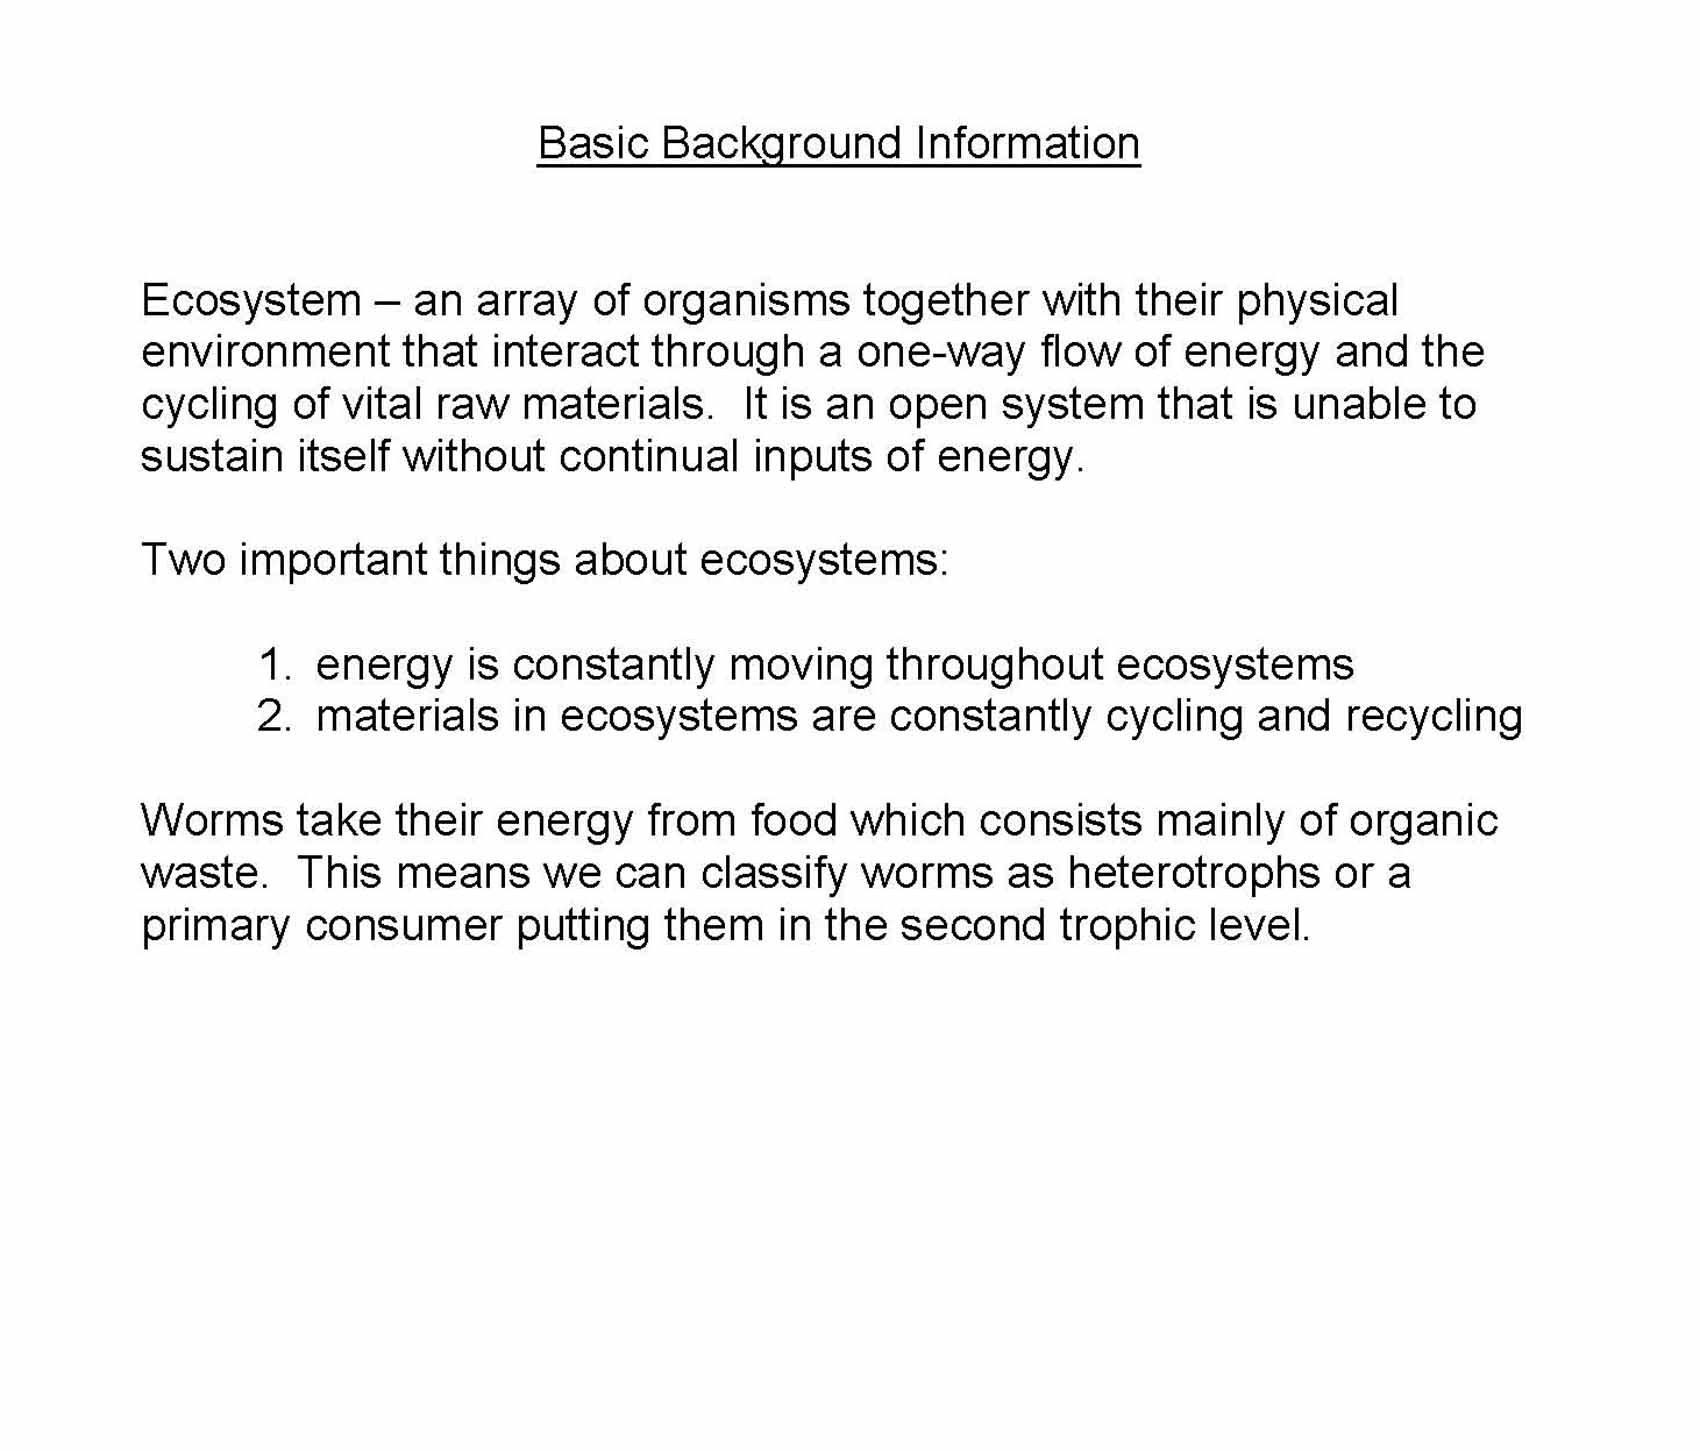 Ecosystem Worksheet Answer Key